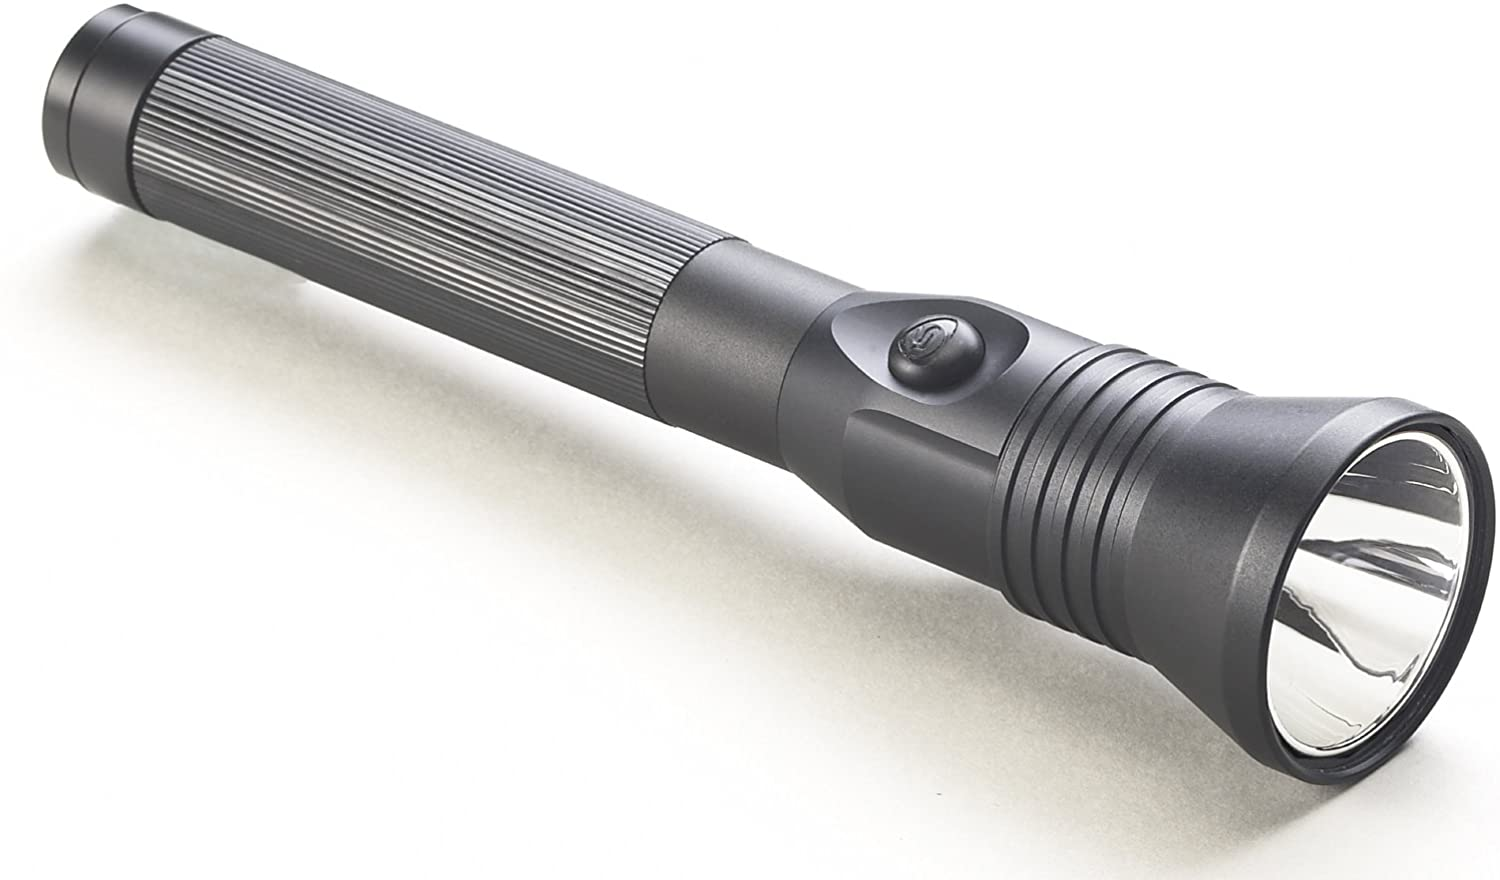 Streamlight 75900 Stinger DS LED High Power Rechargeable Flashlight without Charger - 800 Lumens